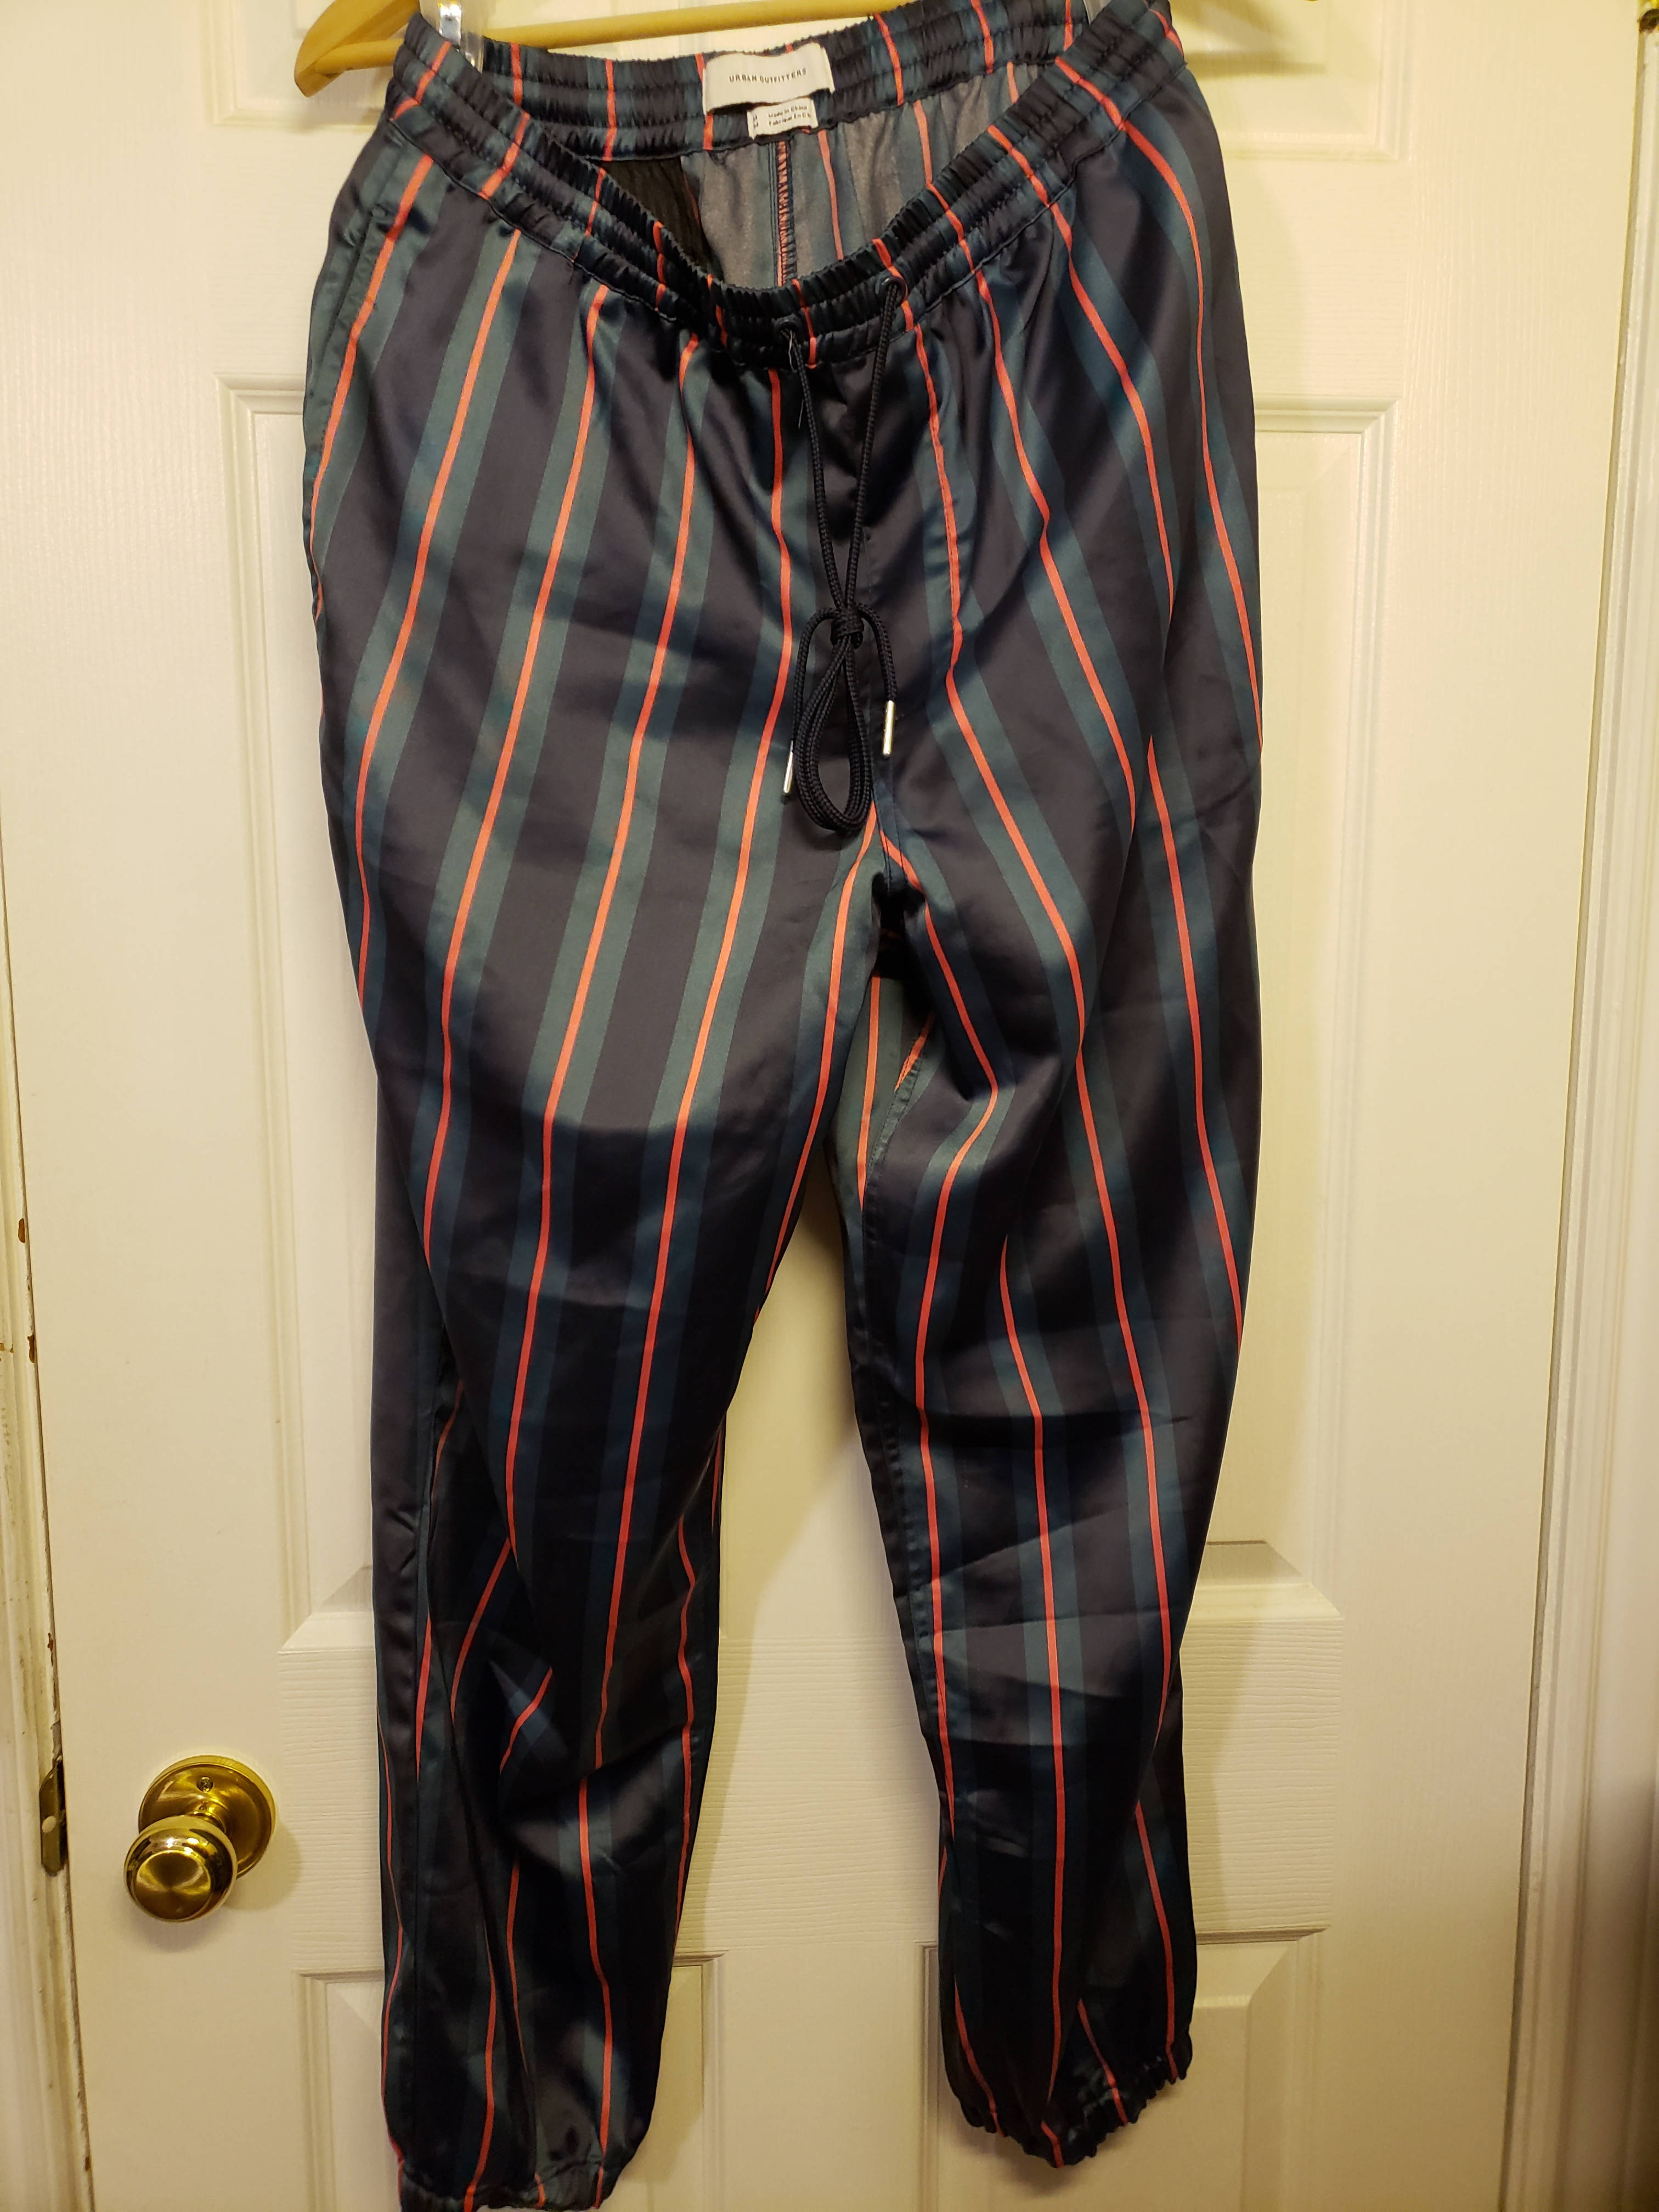 Urban Outfitters - Striped Pants